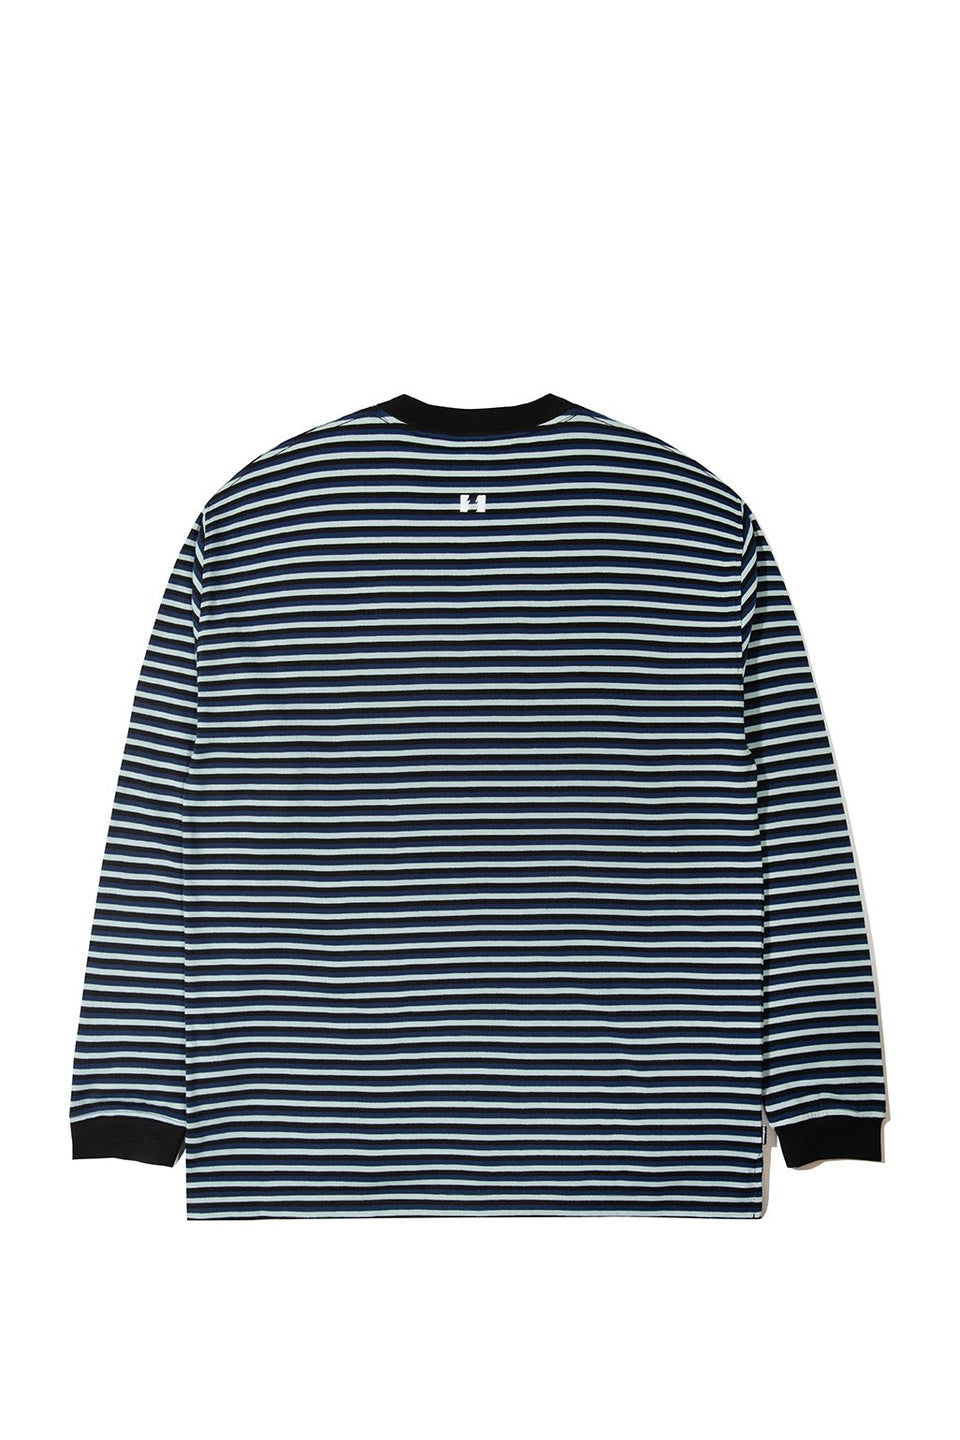 The Hundreds Jones L/S Shirt TOPS Black